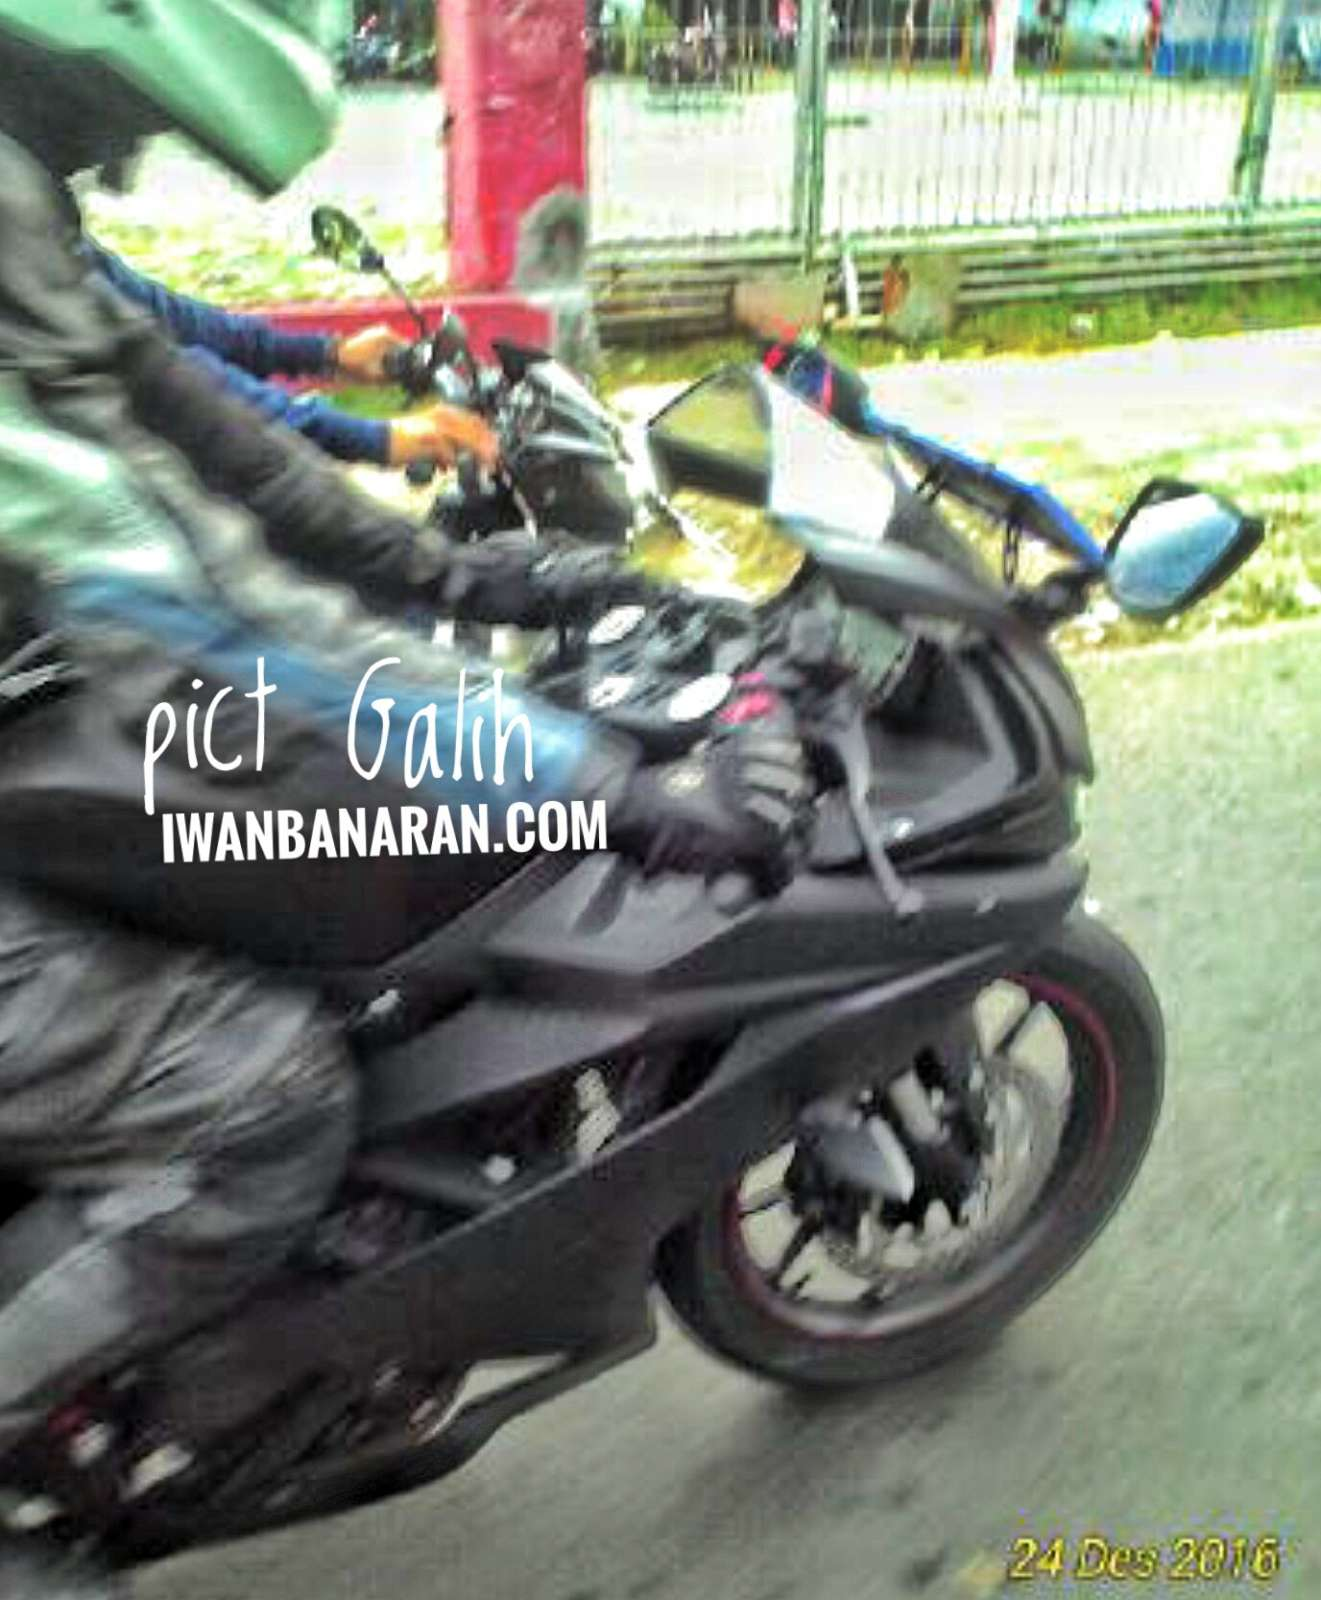 UPDATE: NEW IMAGES] Is this the upcoming Yamaha YZF-R15